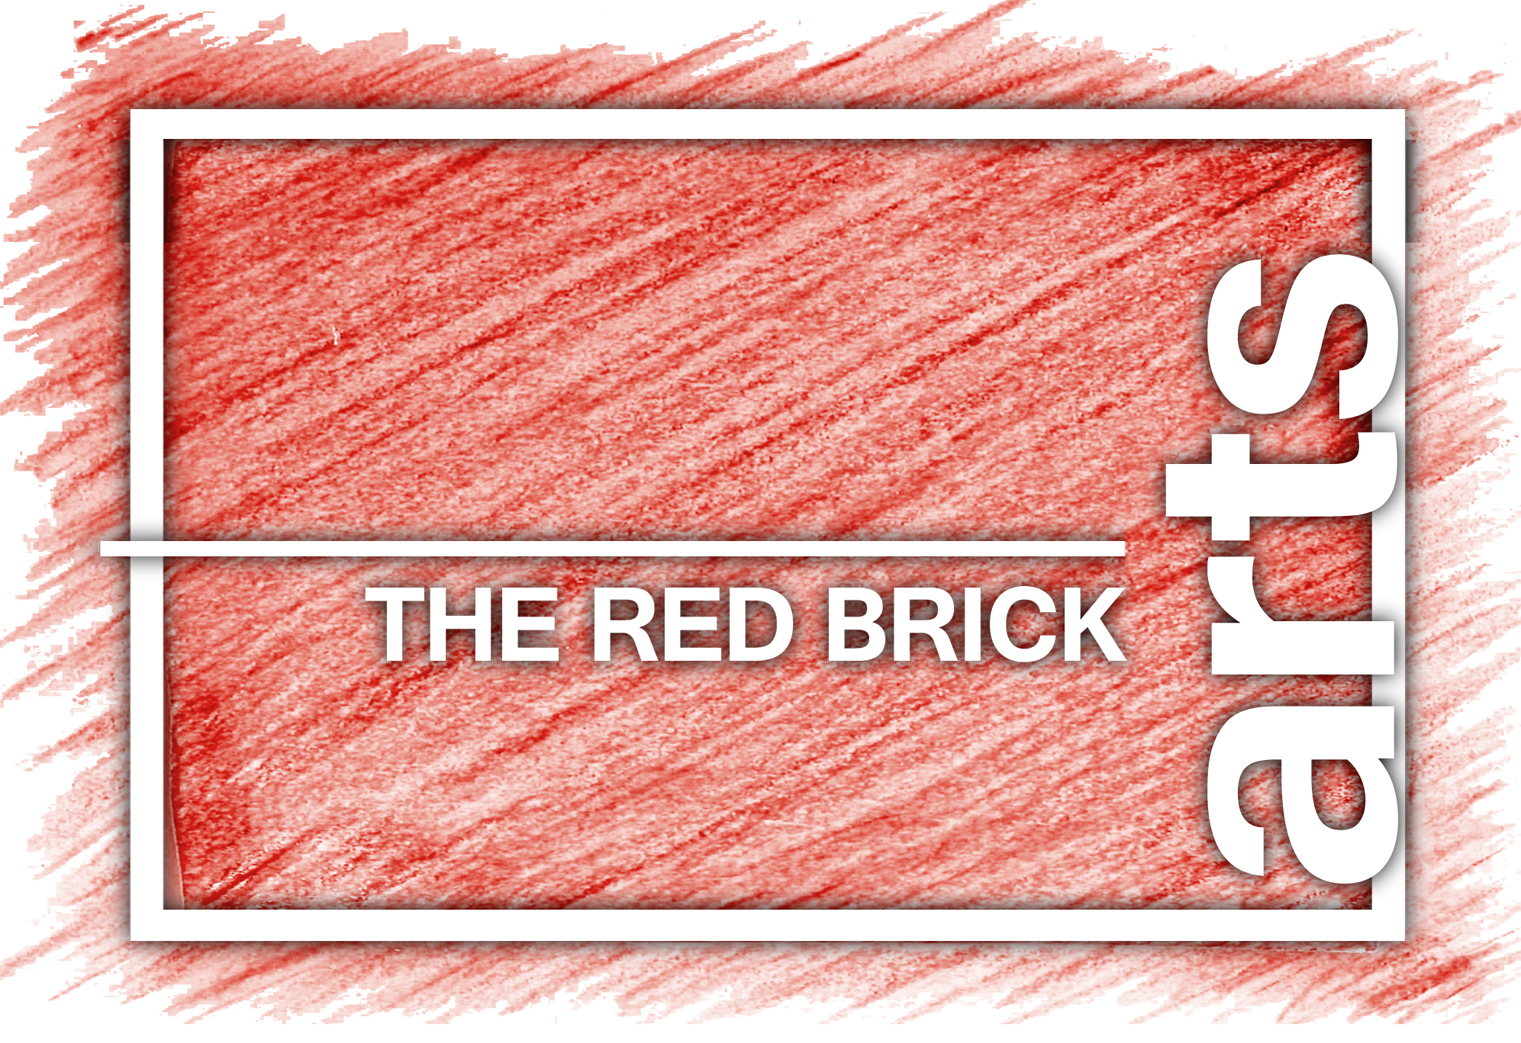 The Red Brick